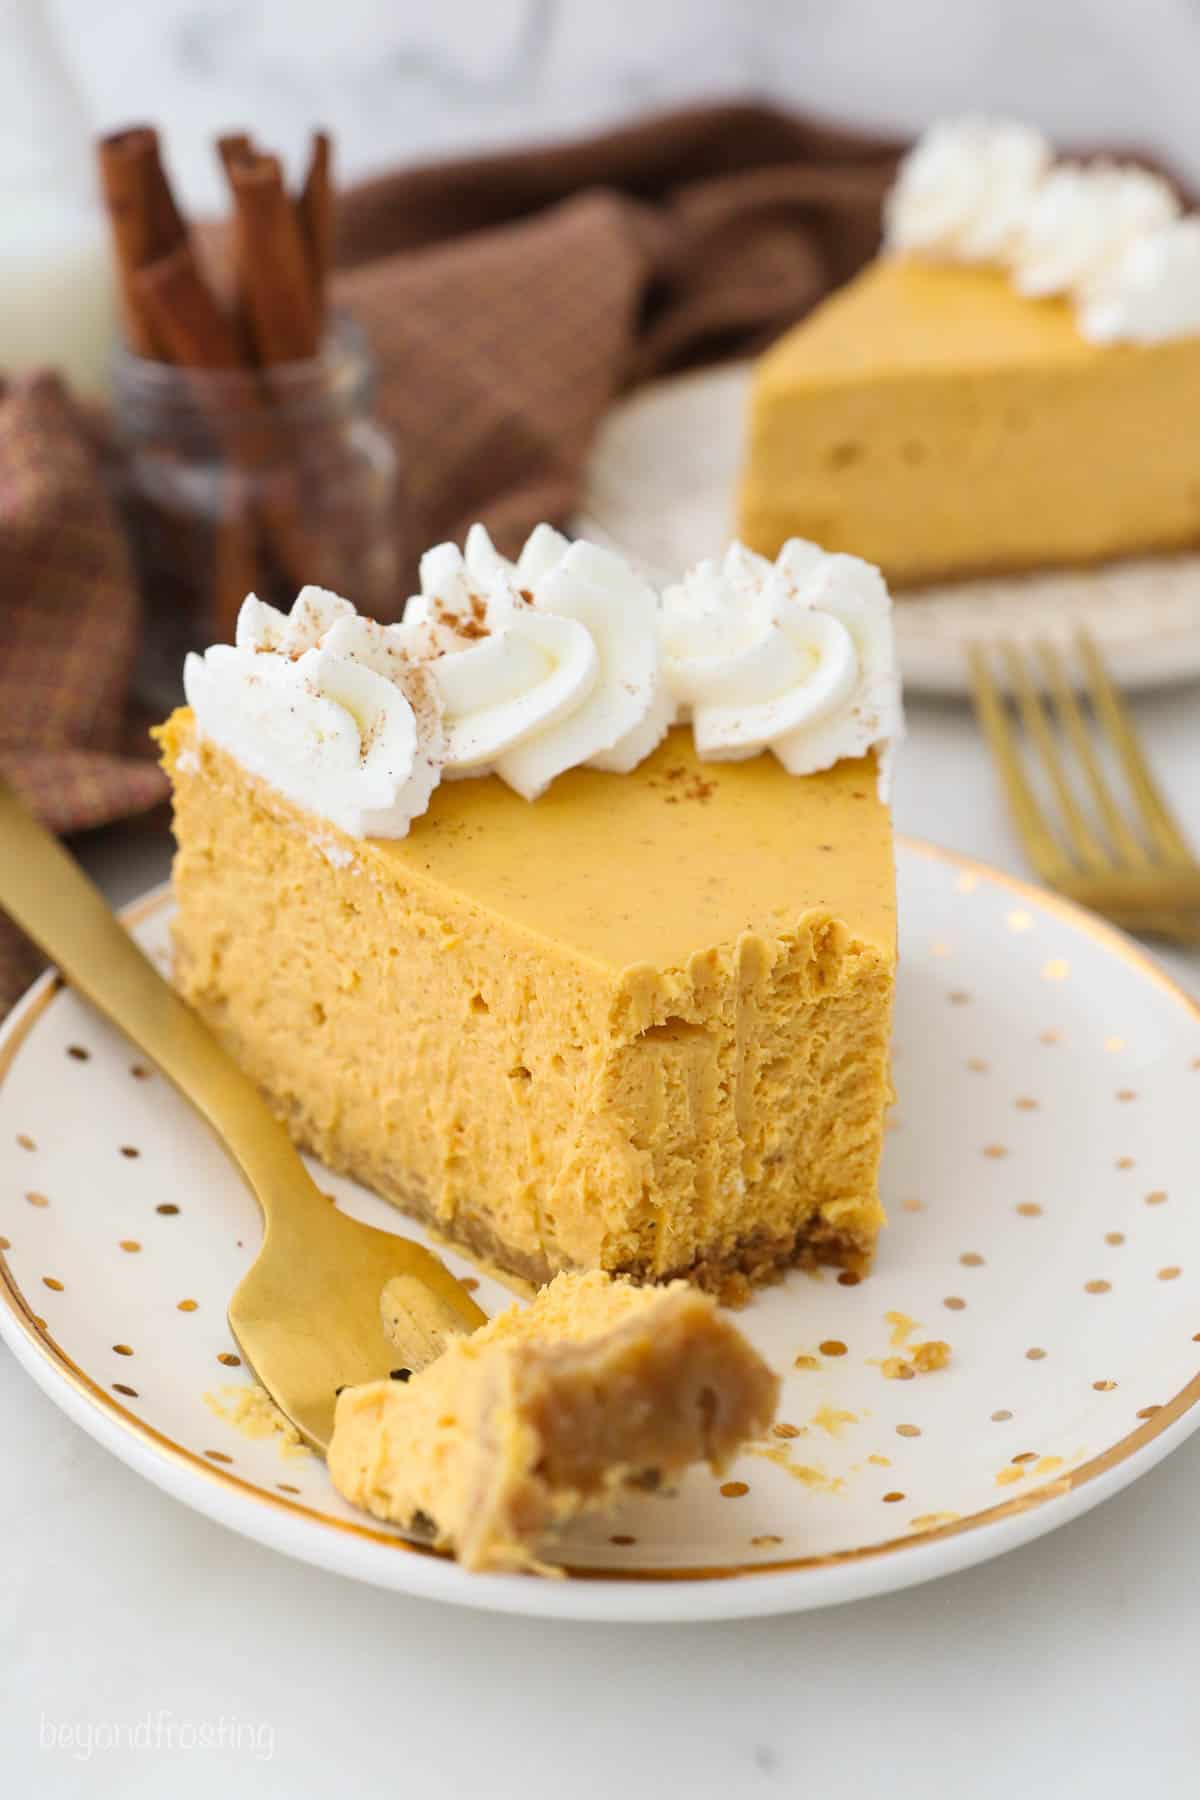 A piece of pumpkin cheesecake on a plate with one bite on a golden fork